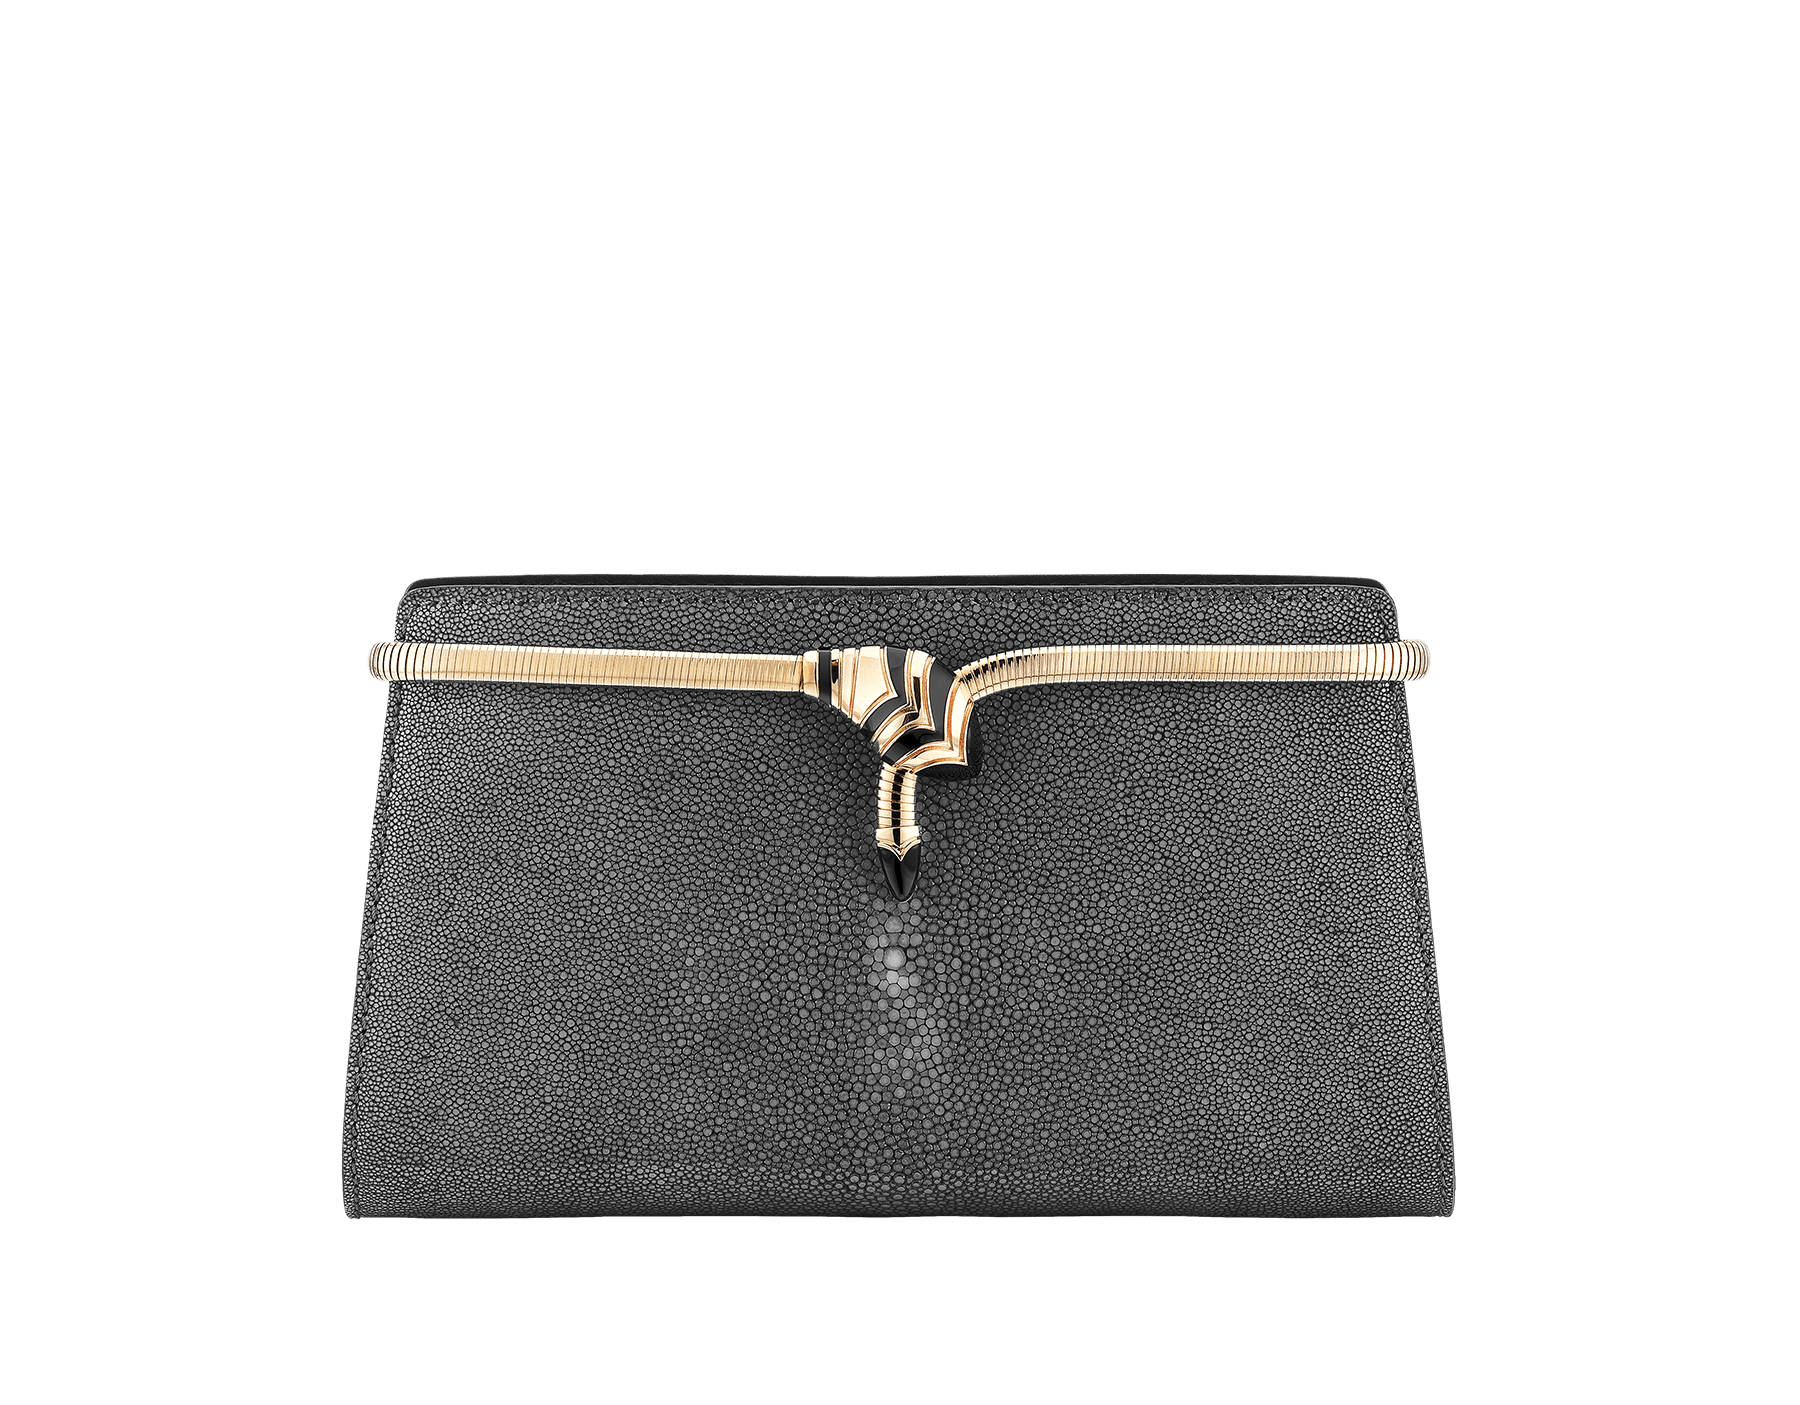 Serpenti Tubogas clutch in black galuchat skin and calf leather. Brass light rose gold plated snake body-shaped frame closure with black enamel. 526-001-0671S image 1